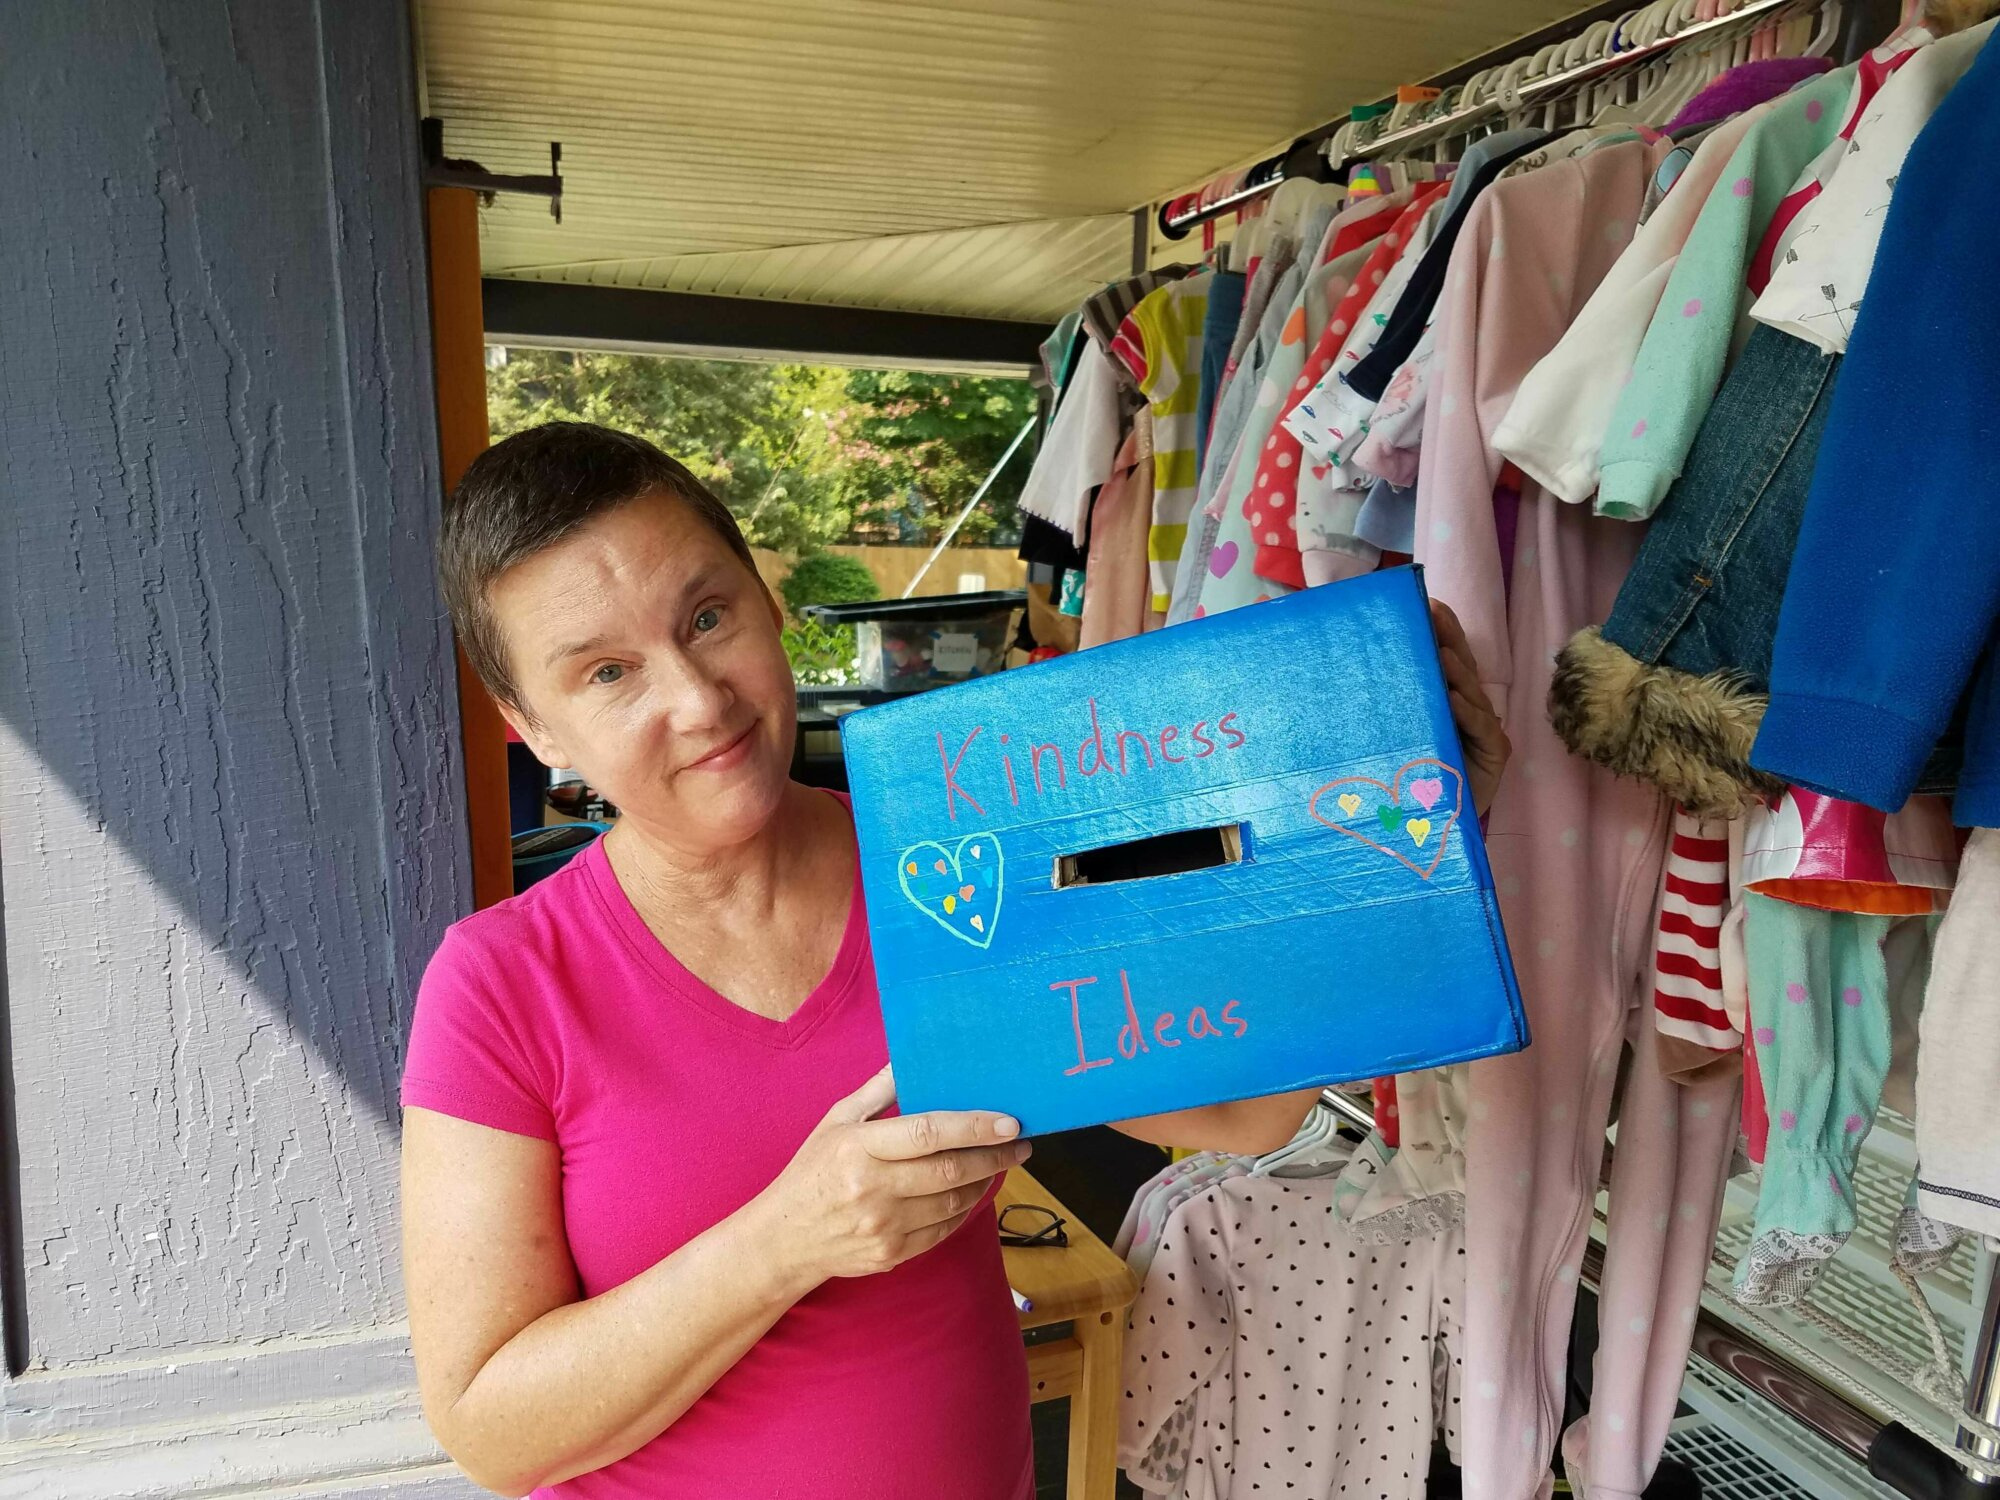 Where do you find kindness? How about at an Arlington yard sale?